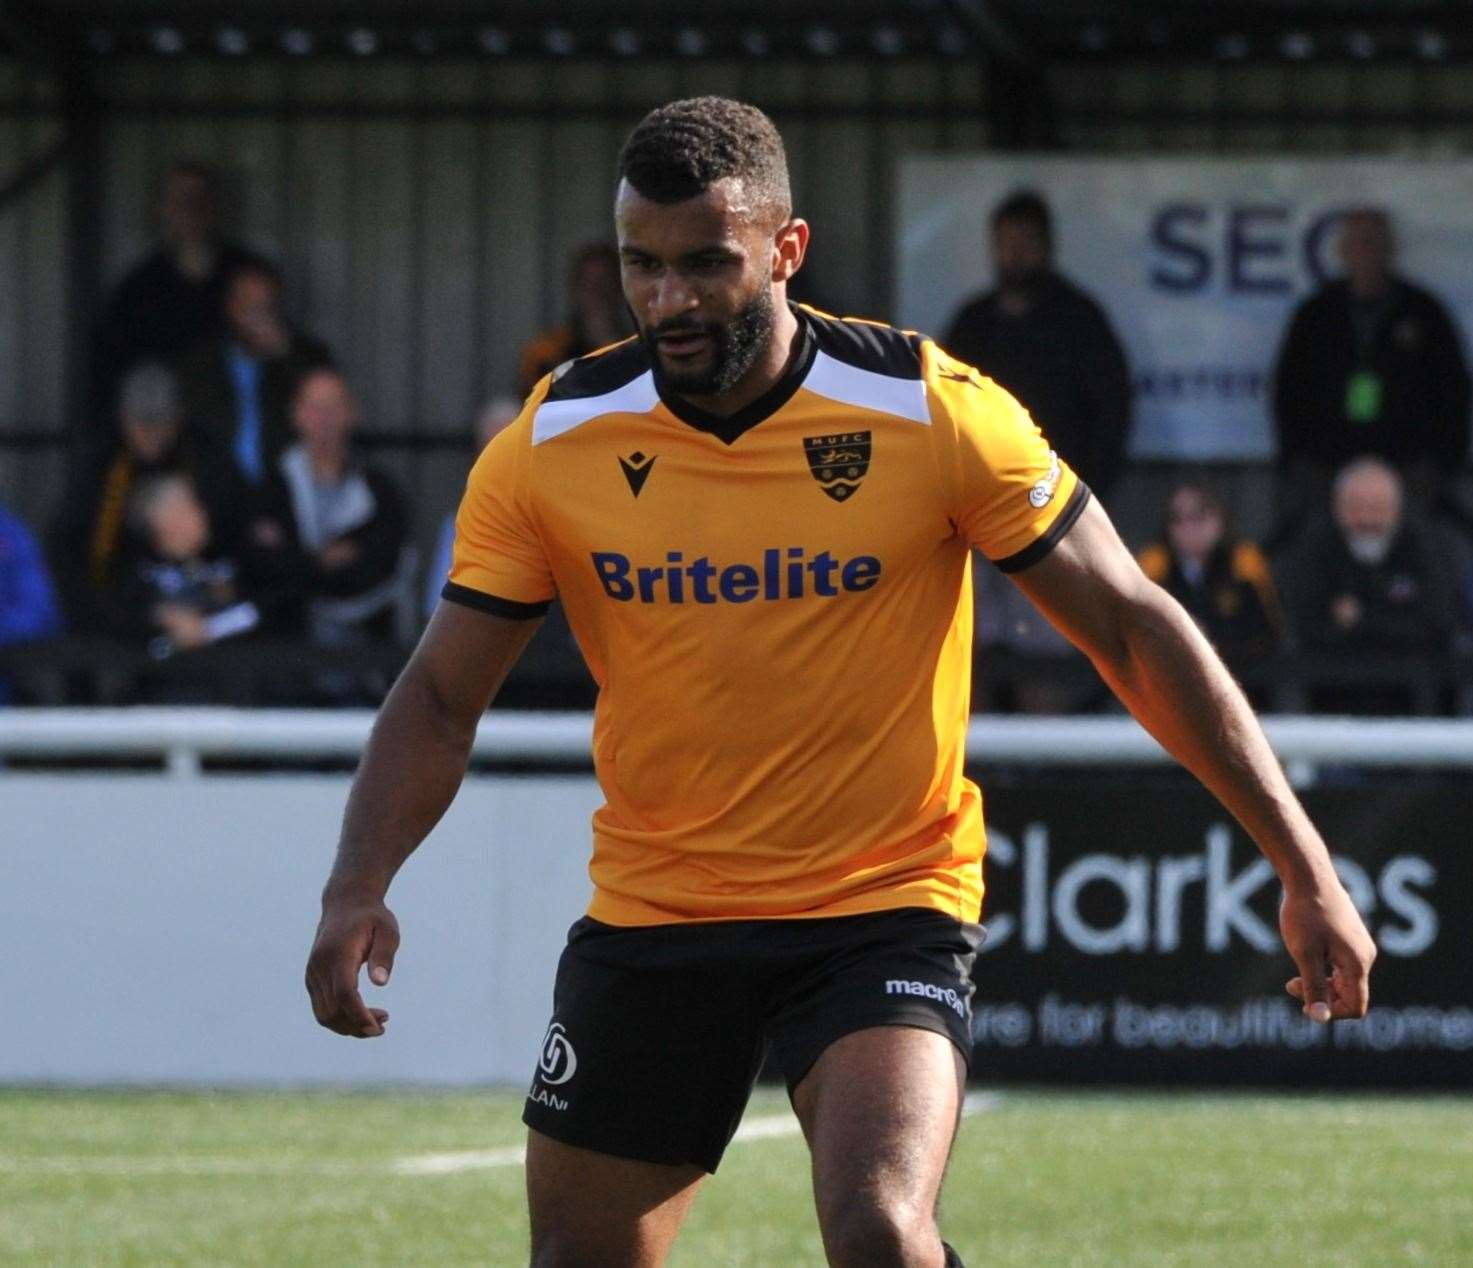 Dan Wishart gave Maidstone the lead at Dartford Picture: Steve Terrell